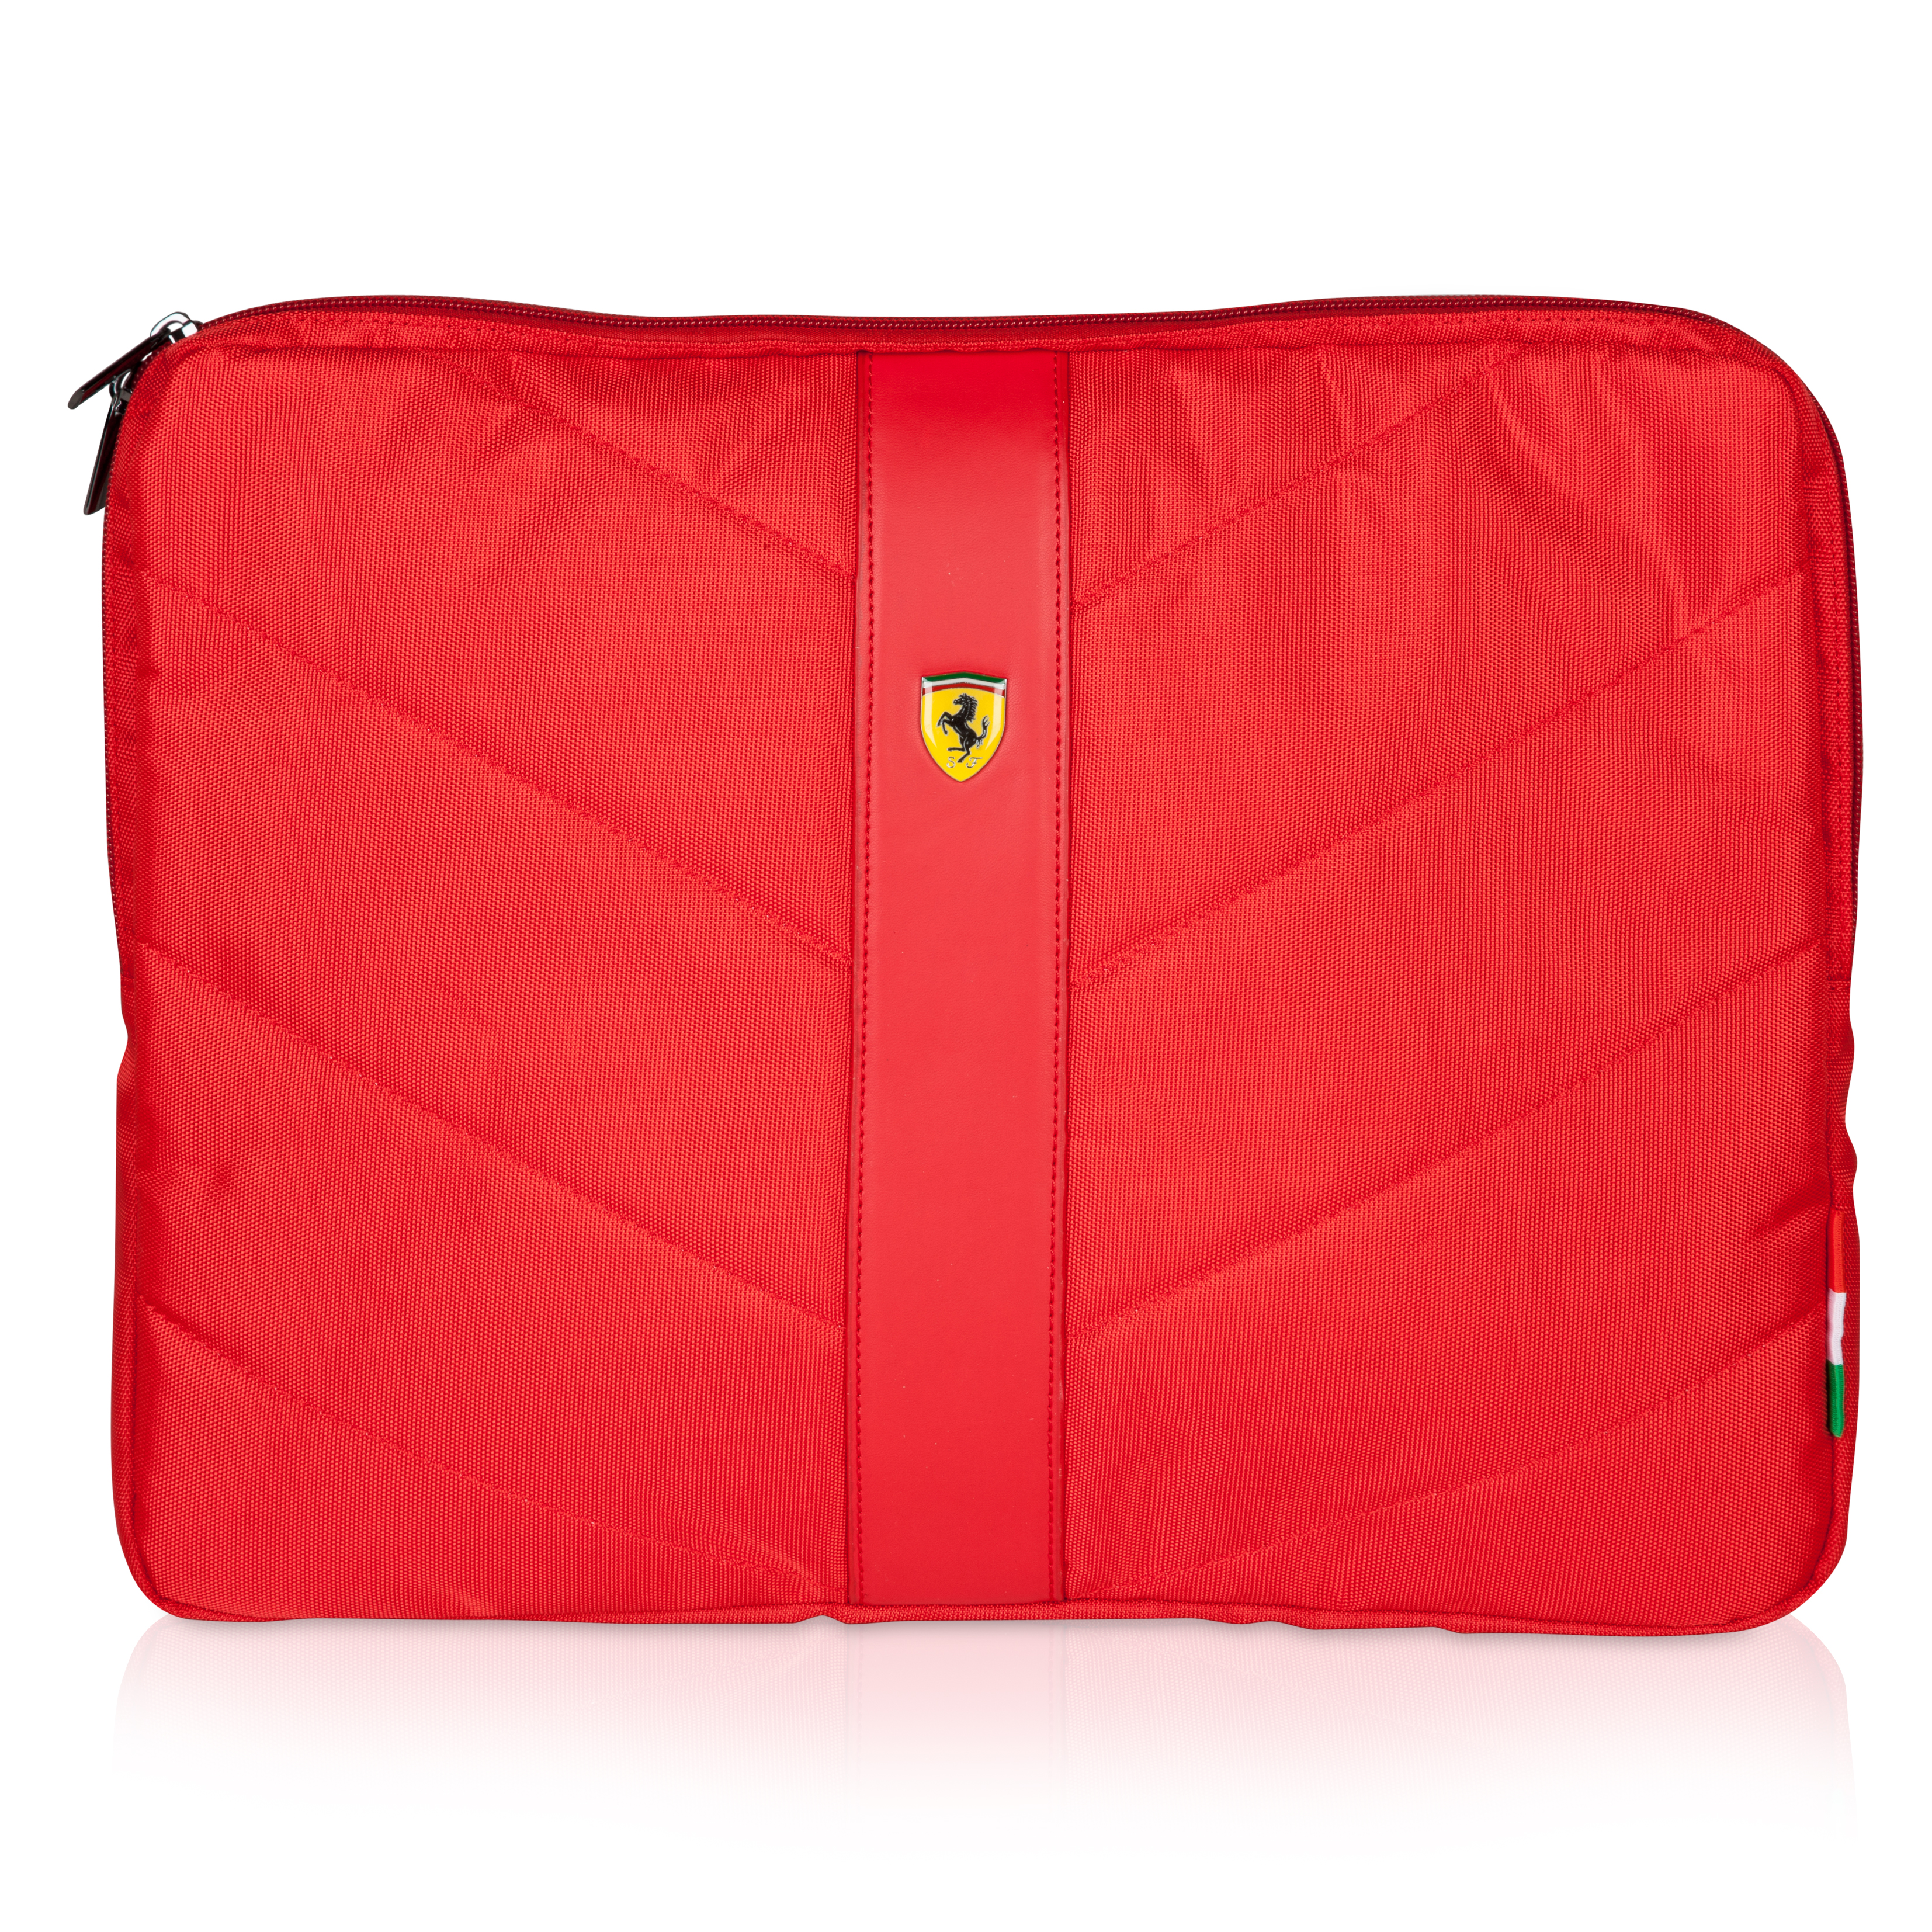 Scuderia Ferrari Laptop Sleeve - Red